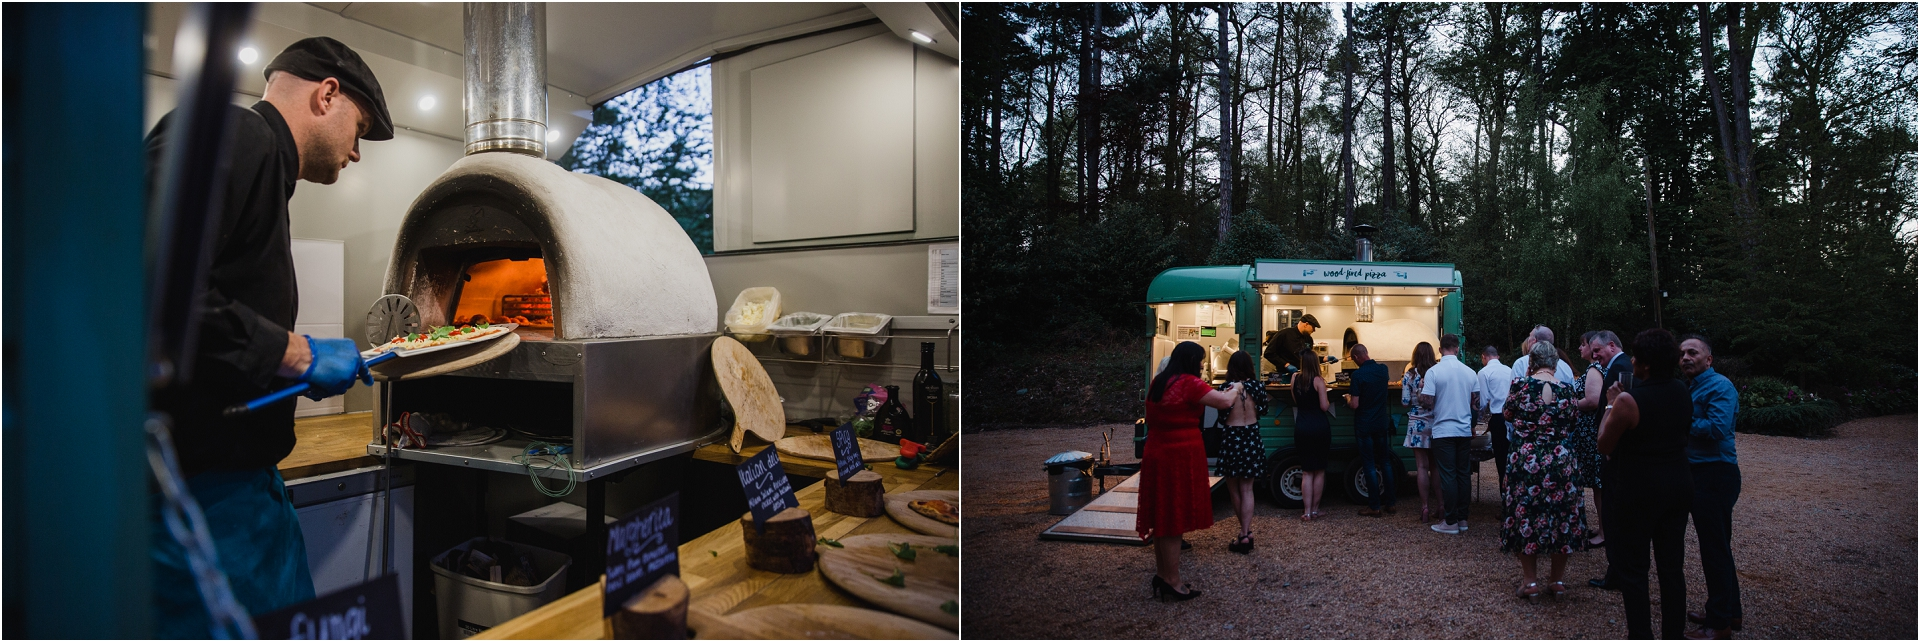 wedding with wood fired pizza van